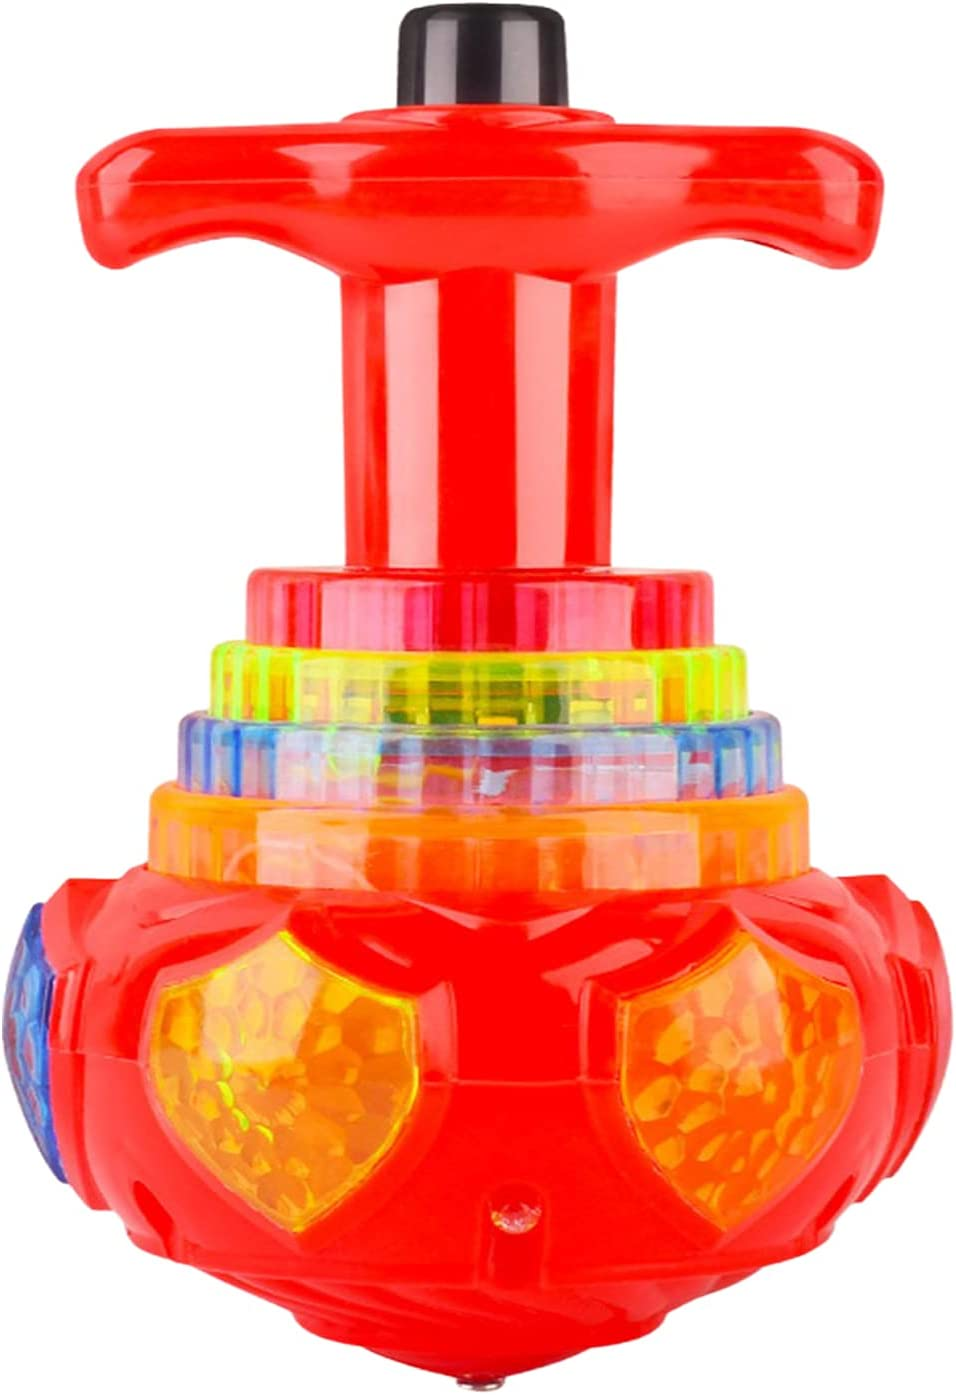 Flowerriver Light Up Toys Spinning for Tops New Free Shipping Kids Ranking TOP5 wi Spinner